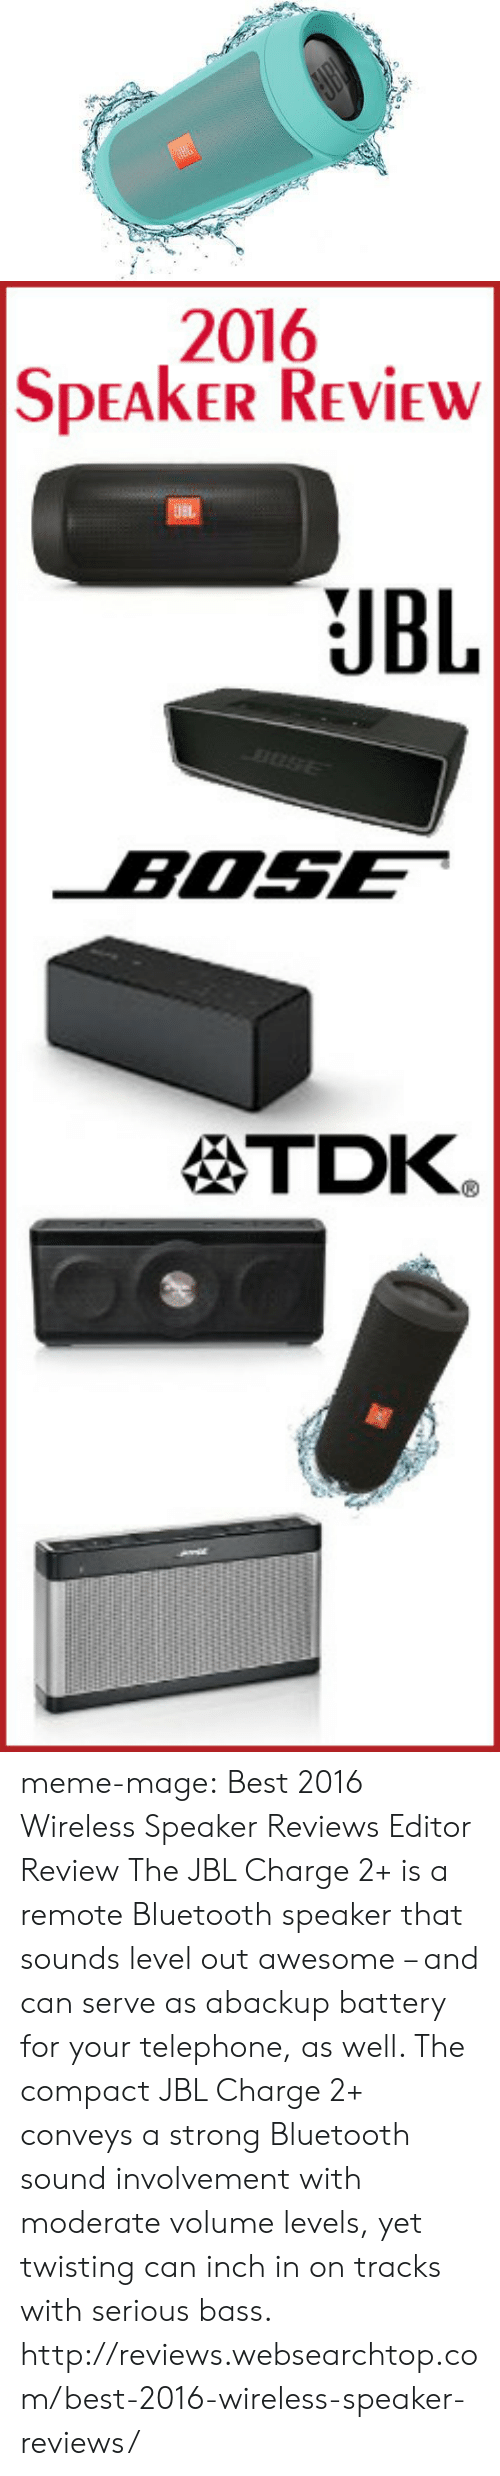 Amazon, Bluetooth, and Meme: 2016  SPEAKER REVİE  JBL  TDK. meme-mage:    Best 2016 Wireless Speaker Reviews   Editor Review The JBL Charge 2+ is a remote Bluetooth speaker that sounds level out awesome – and can serve as abackup battery for your telephone, as well. The compact JBL Charge 2+ conveys a strong Bluetooth sound involvement with moderate volume levels, yet twisting can inch in on tracks with serious bass. http://reviews.websearchtop.com/best-2016-wireless-speaker-reviews/